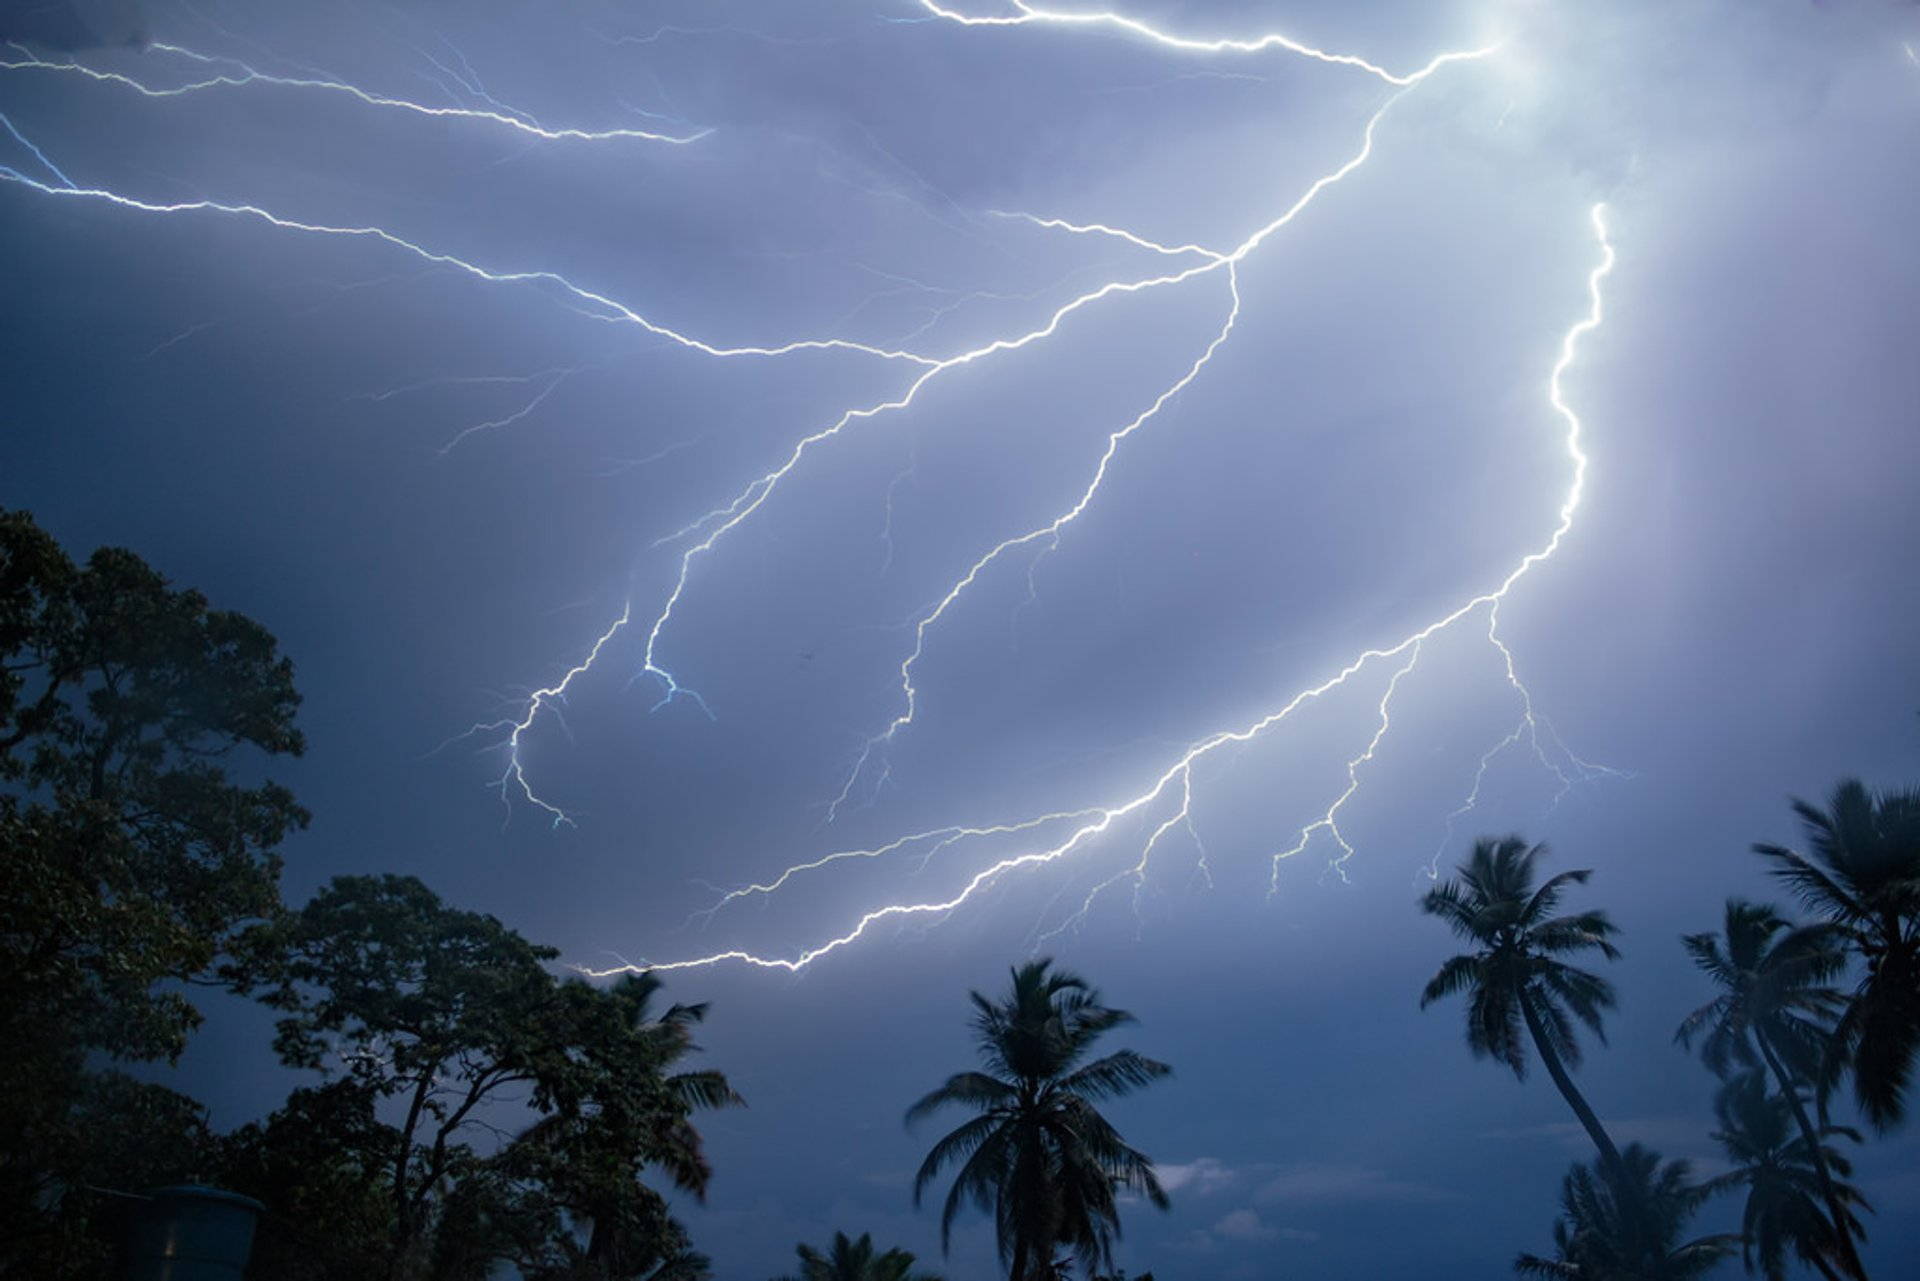 Catatumbo Lightning in Venezuela - Best Season